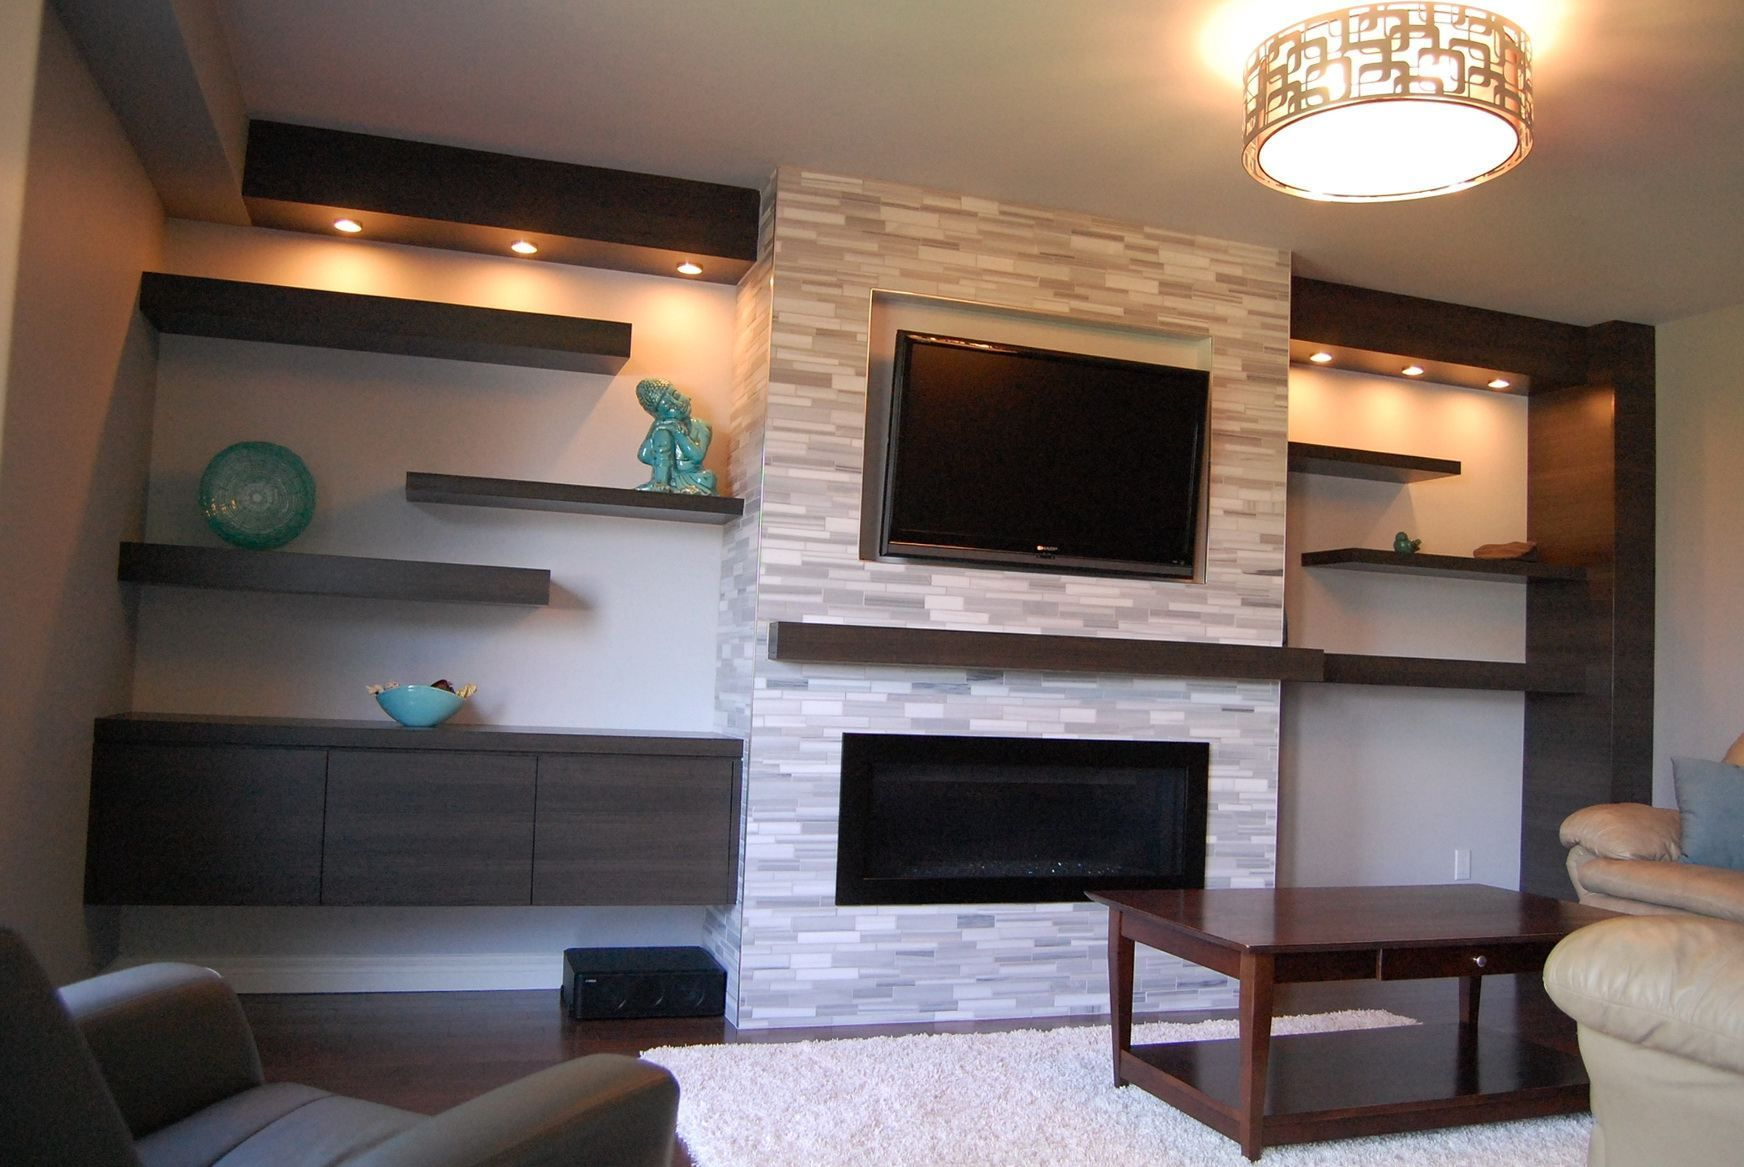 Fireplace With Tile And Wood Mantel Shelf